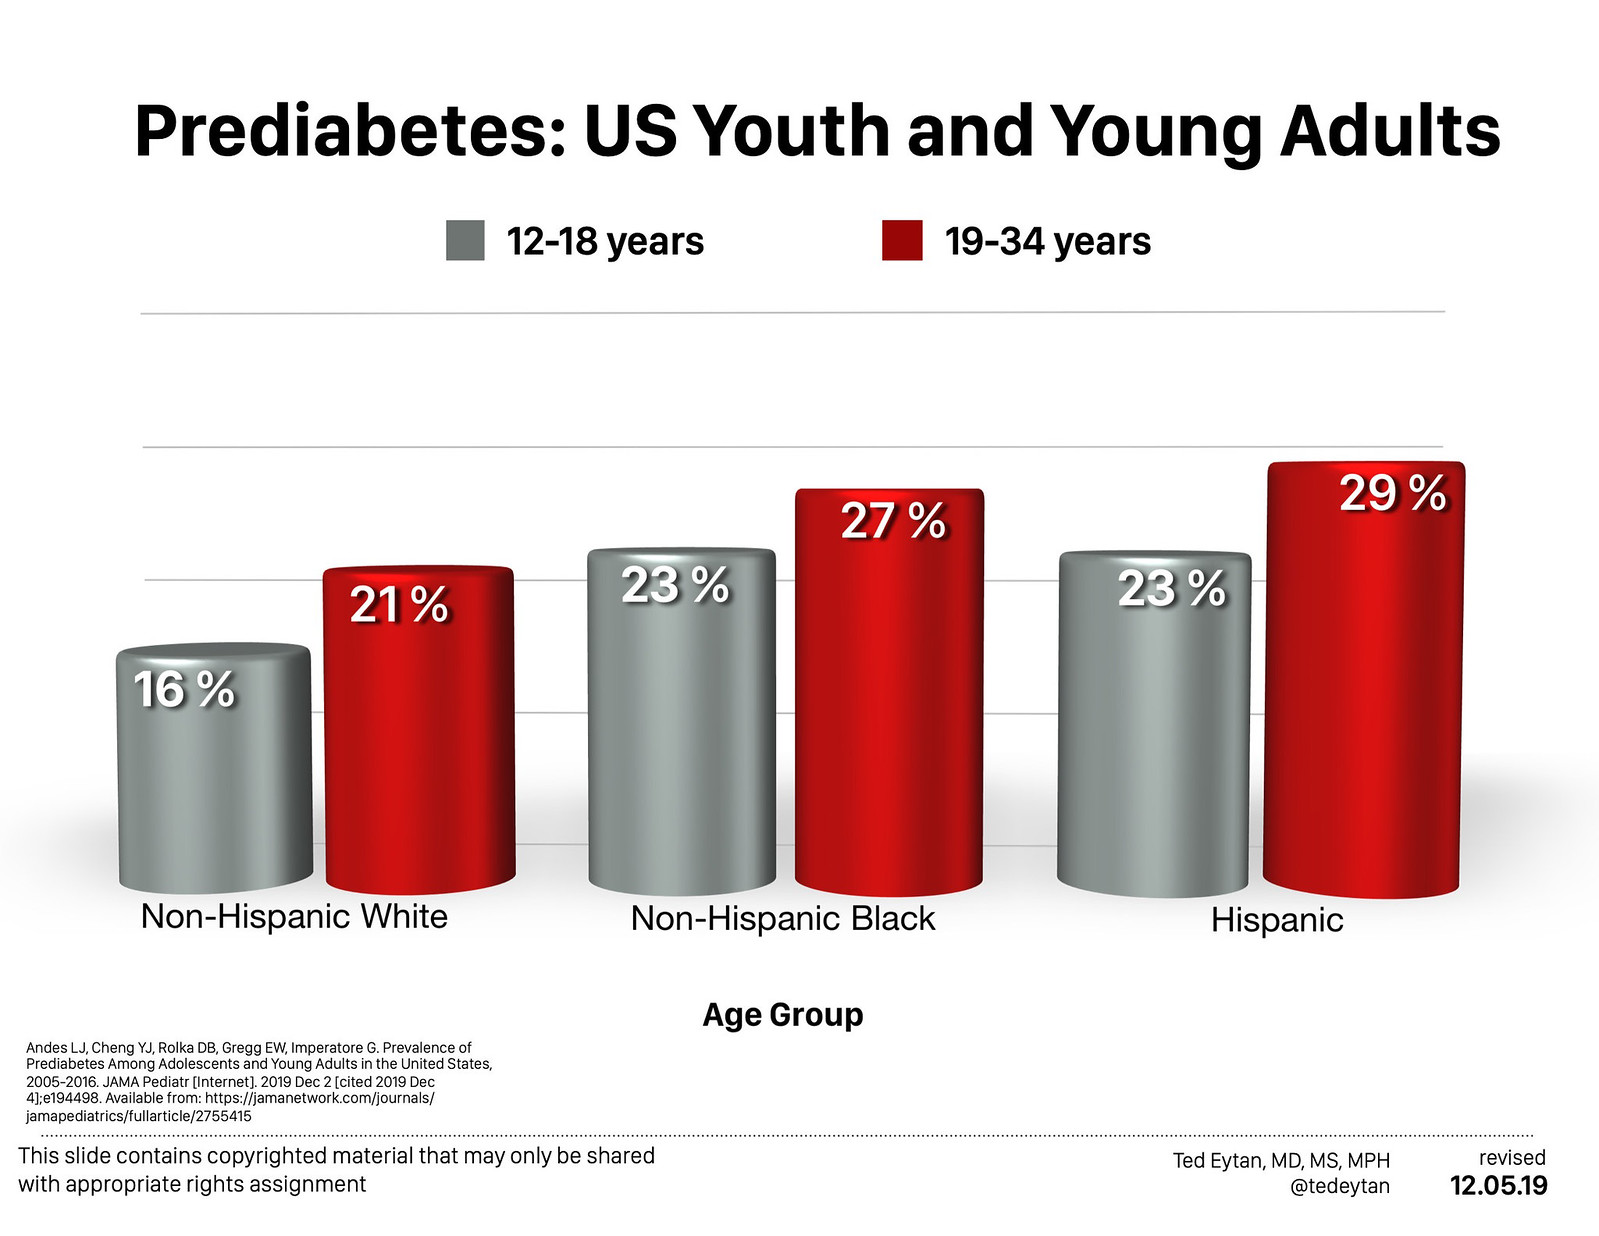 Just Read: Prevalence of Prediabetes Among Adolescents and Young Adults in the United States, 2005-2016 (it's way too high)